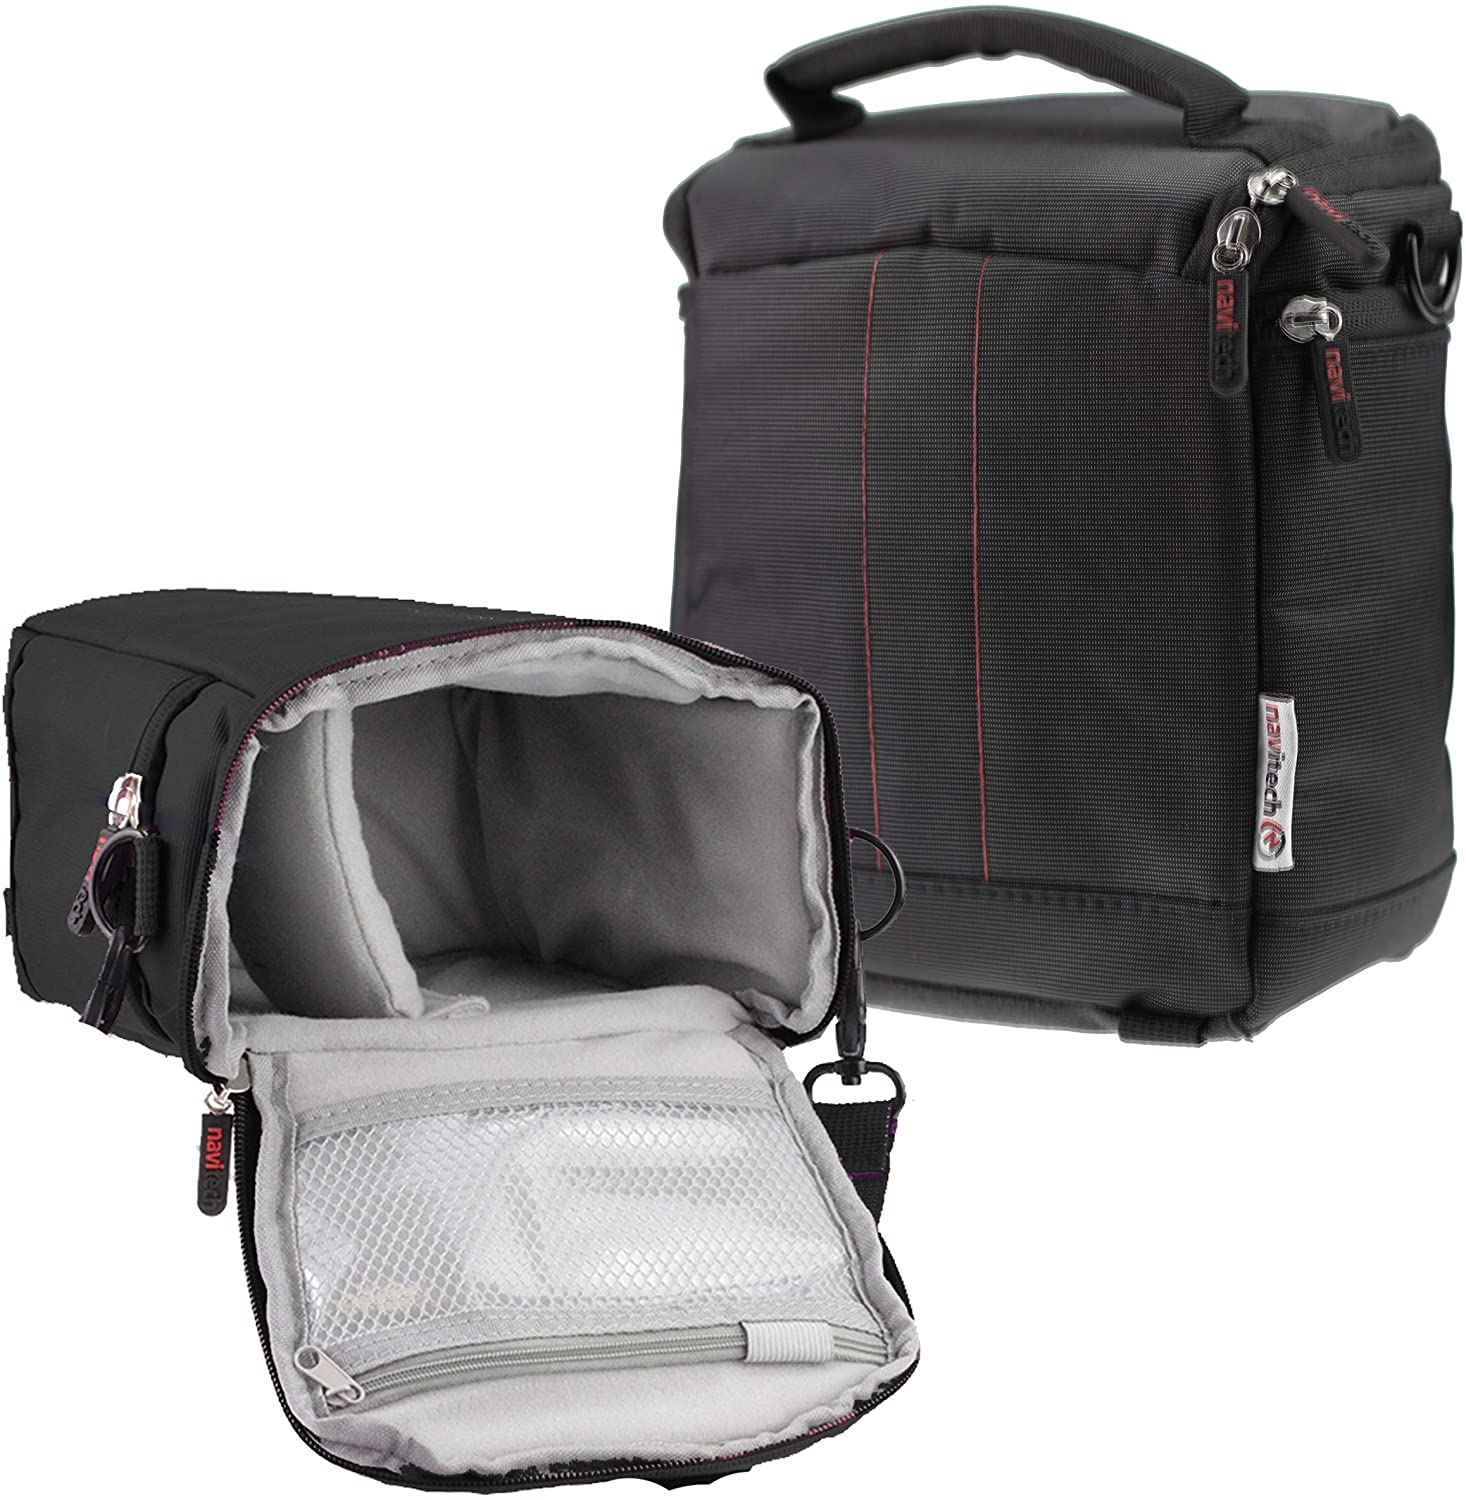 Navitech Black Protective Portable Handheld Binocular Case and Travel Bag Compatible with The Nikon Monarch 10x42